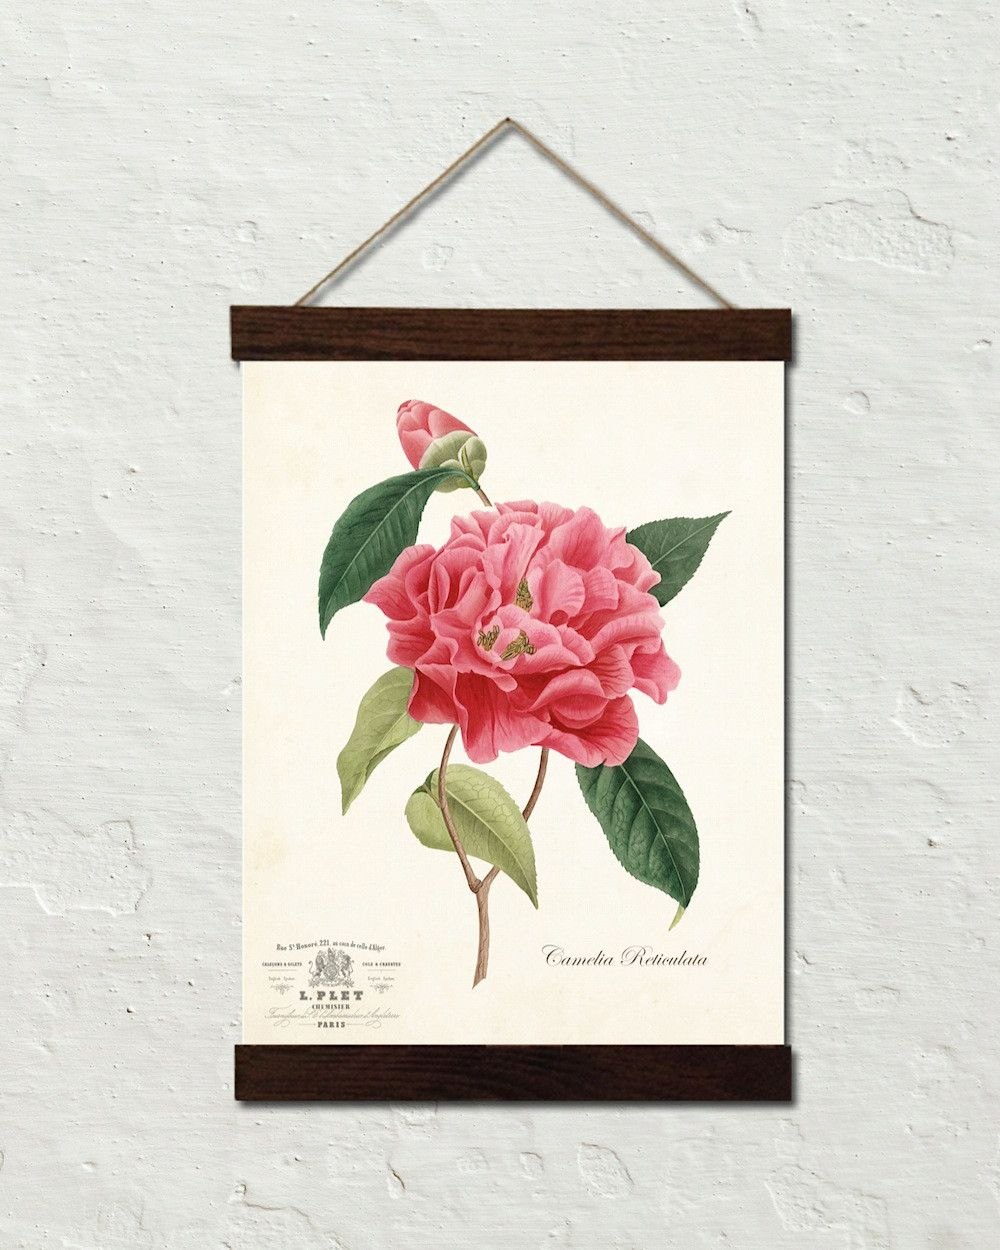 Vintage french camelia reticulata botanical art canvas wall hanging